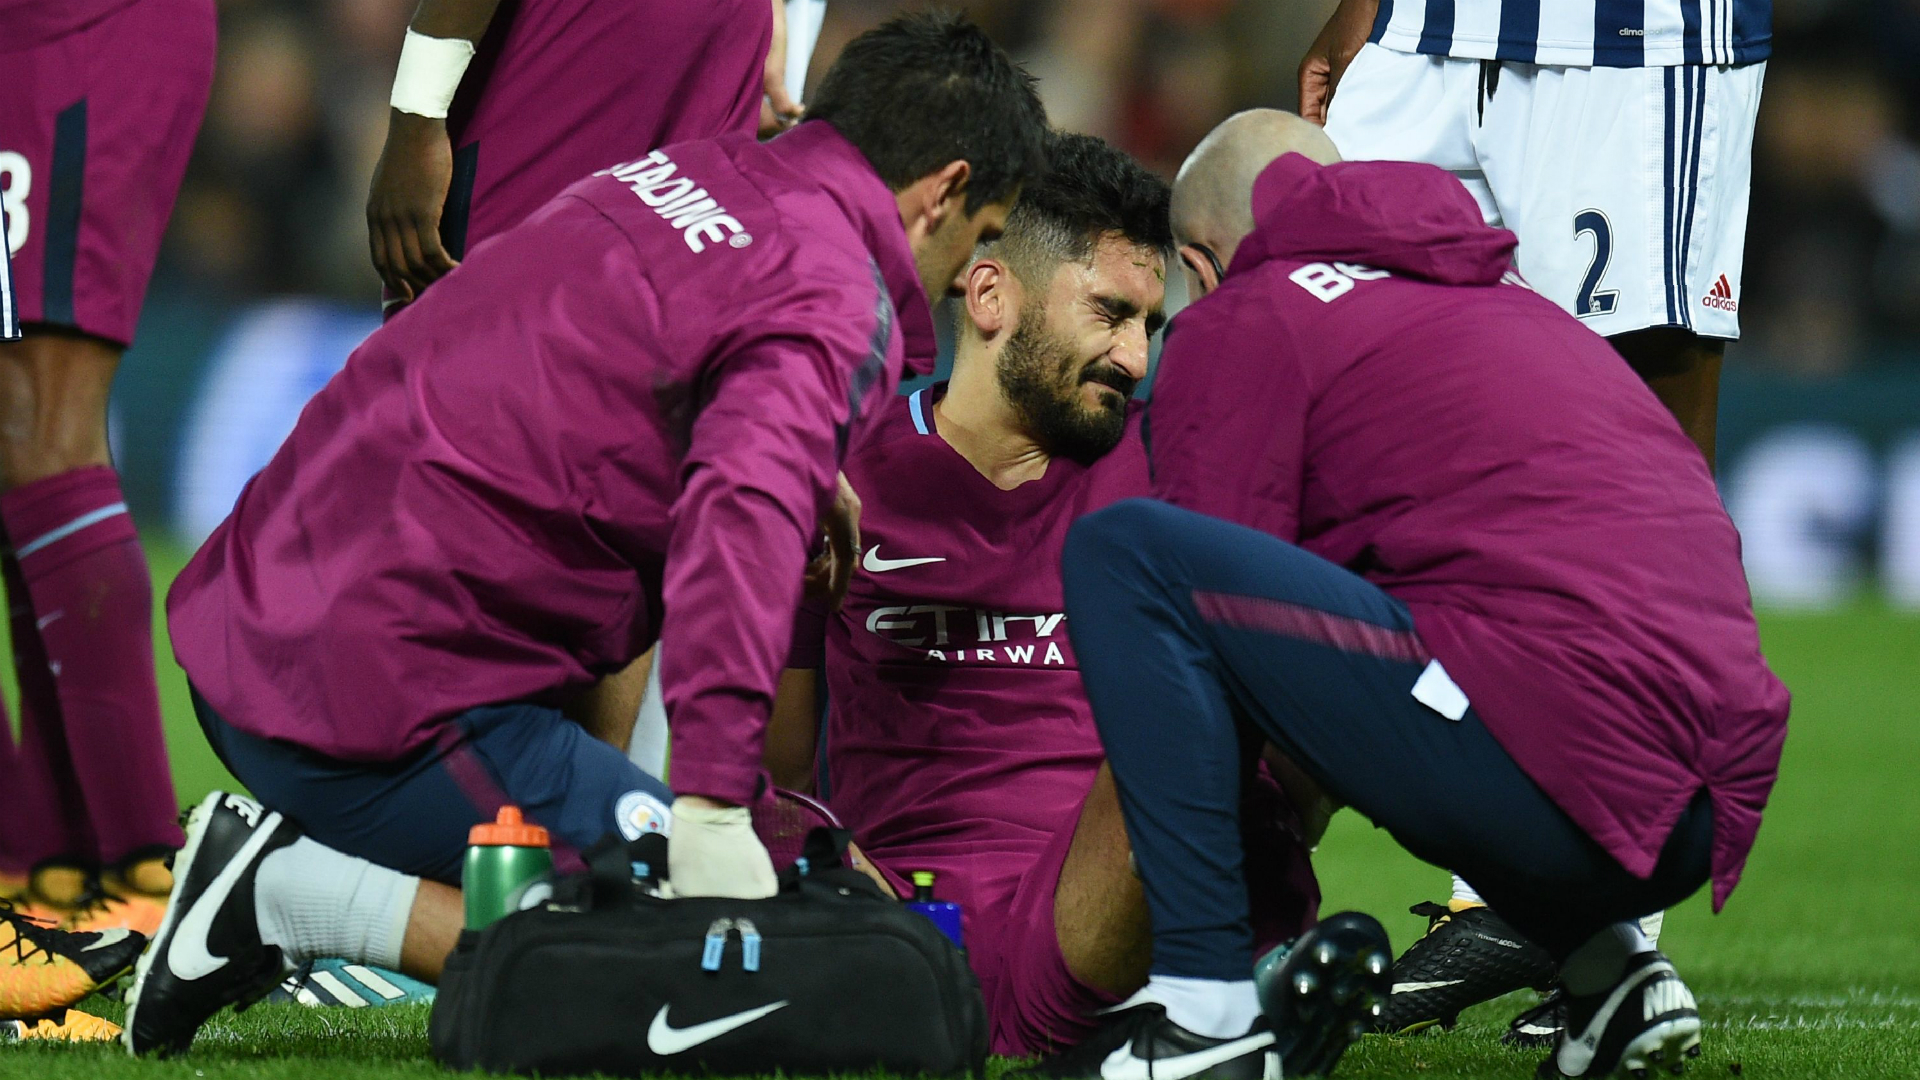 Ilkay Gundogan escapes serious knee injury, Man City confirm